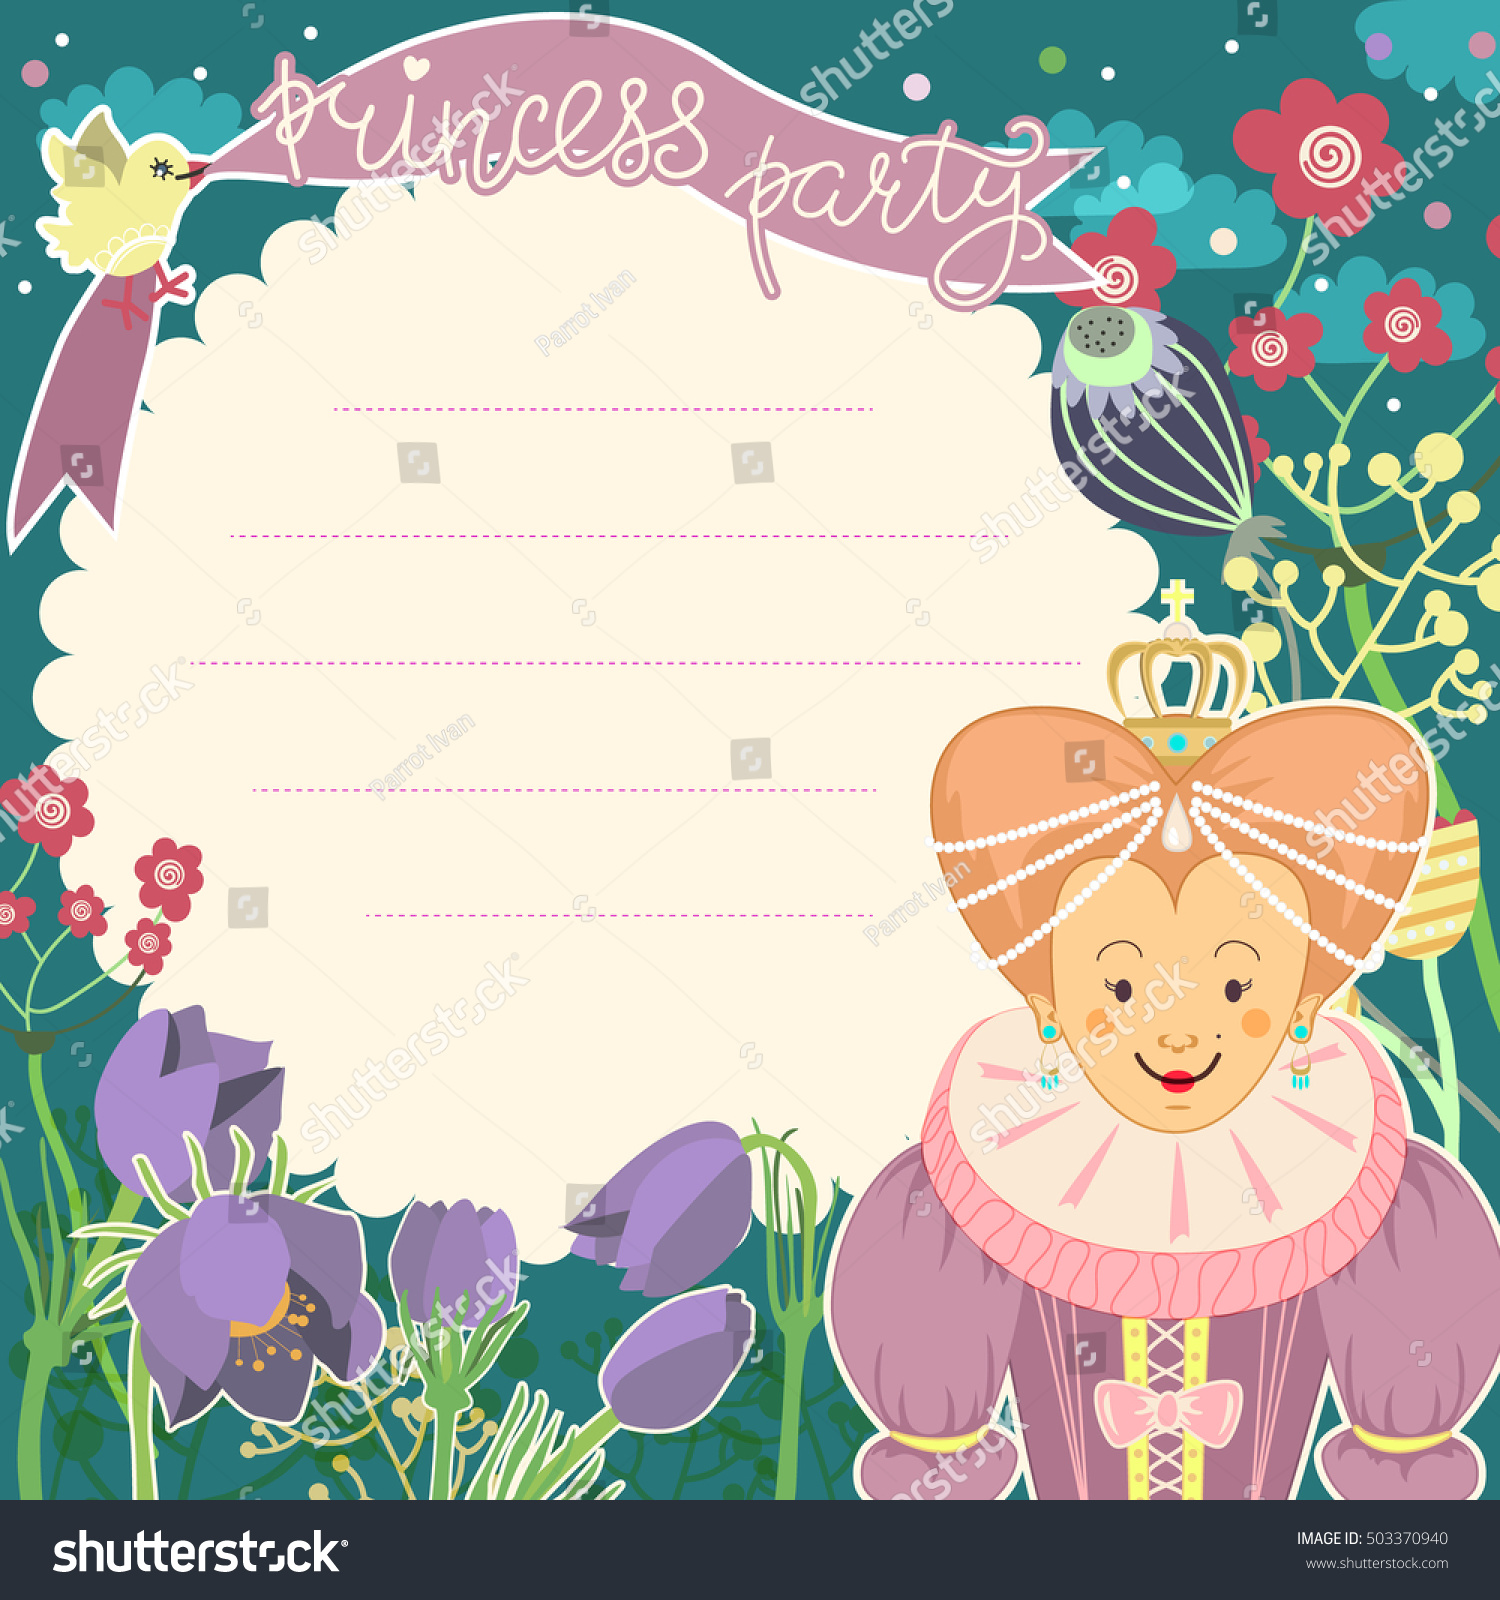 Little Princess Card Template With Blank Space For Text Birthday Party Invitation Vector